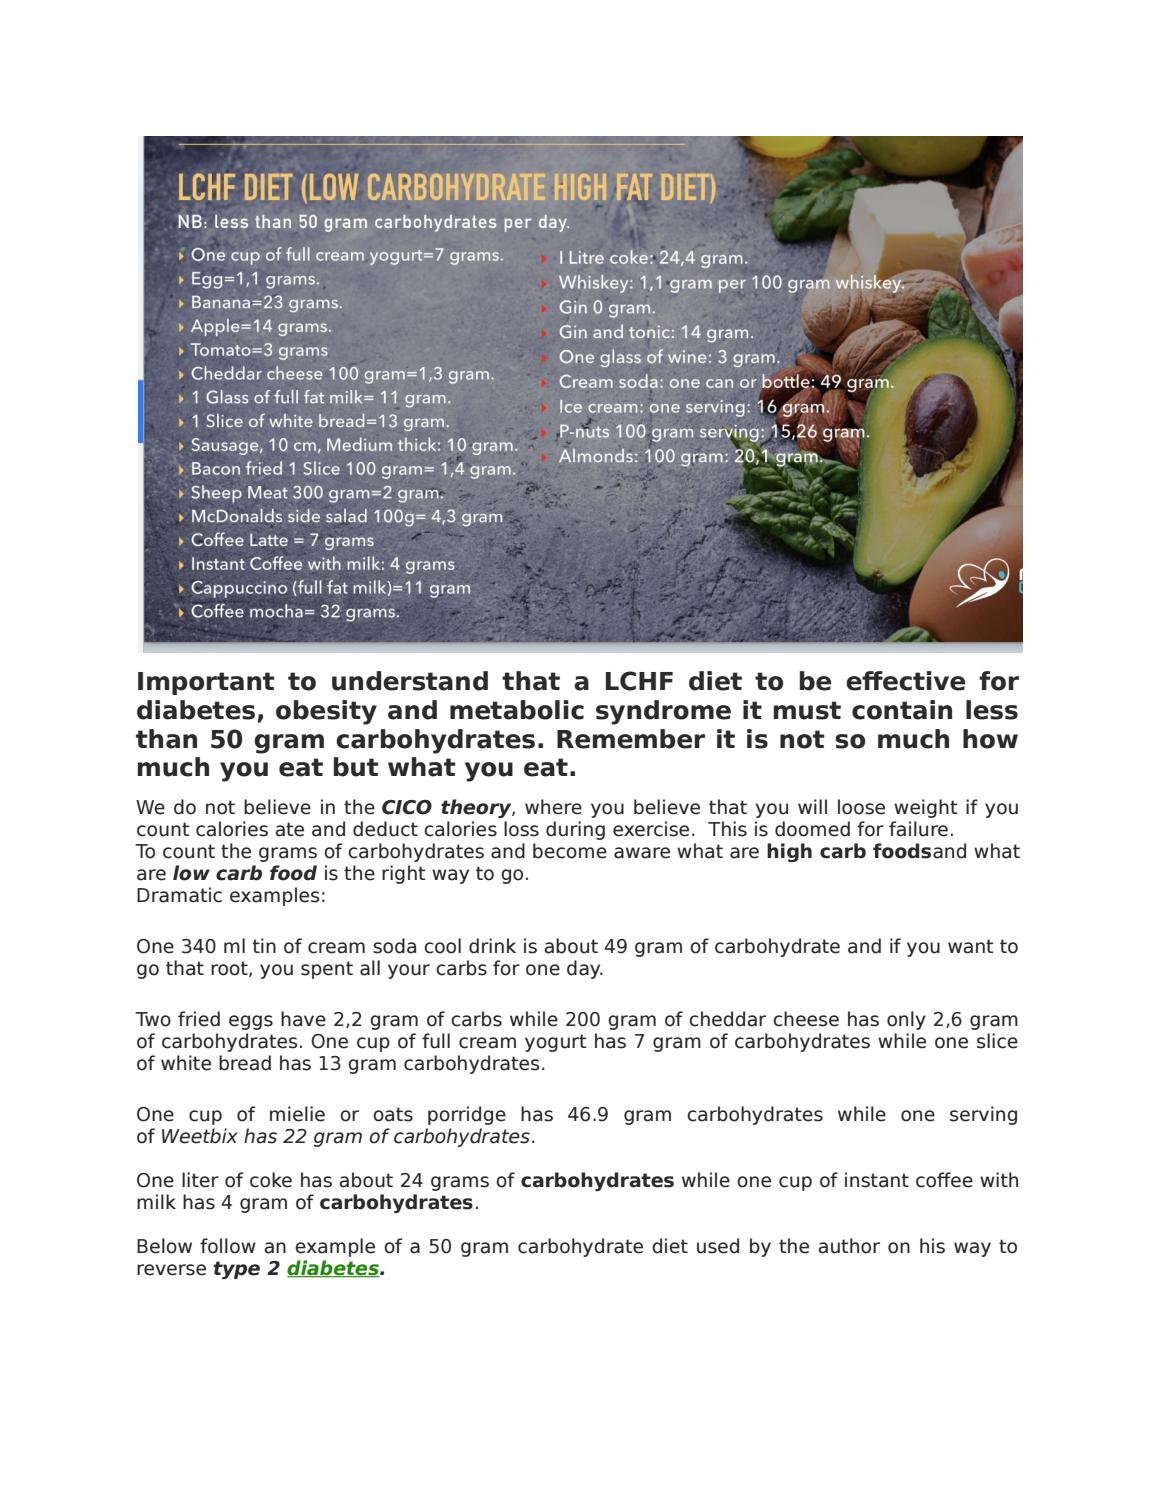 BELOW FOLLOW AN EXAMPLE OF A 50 GRAM CARBOHYDRATE DIET USED by Obesity &  Diabetes Management - issuu